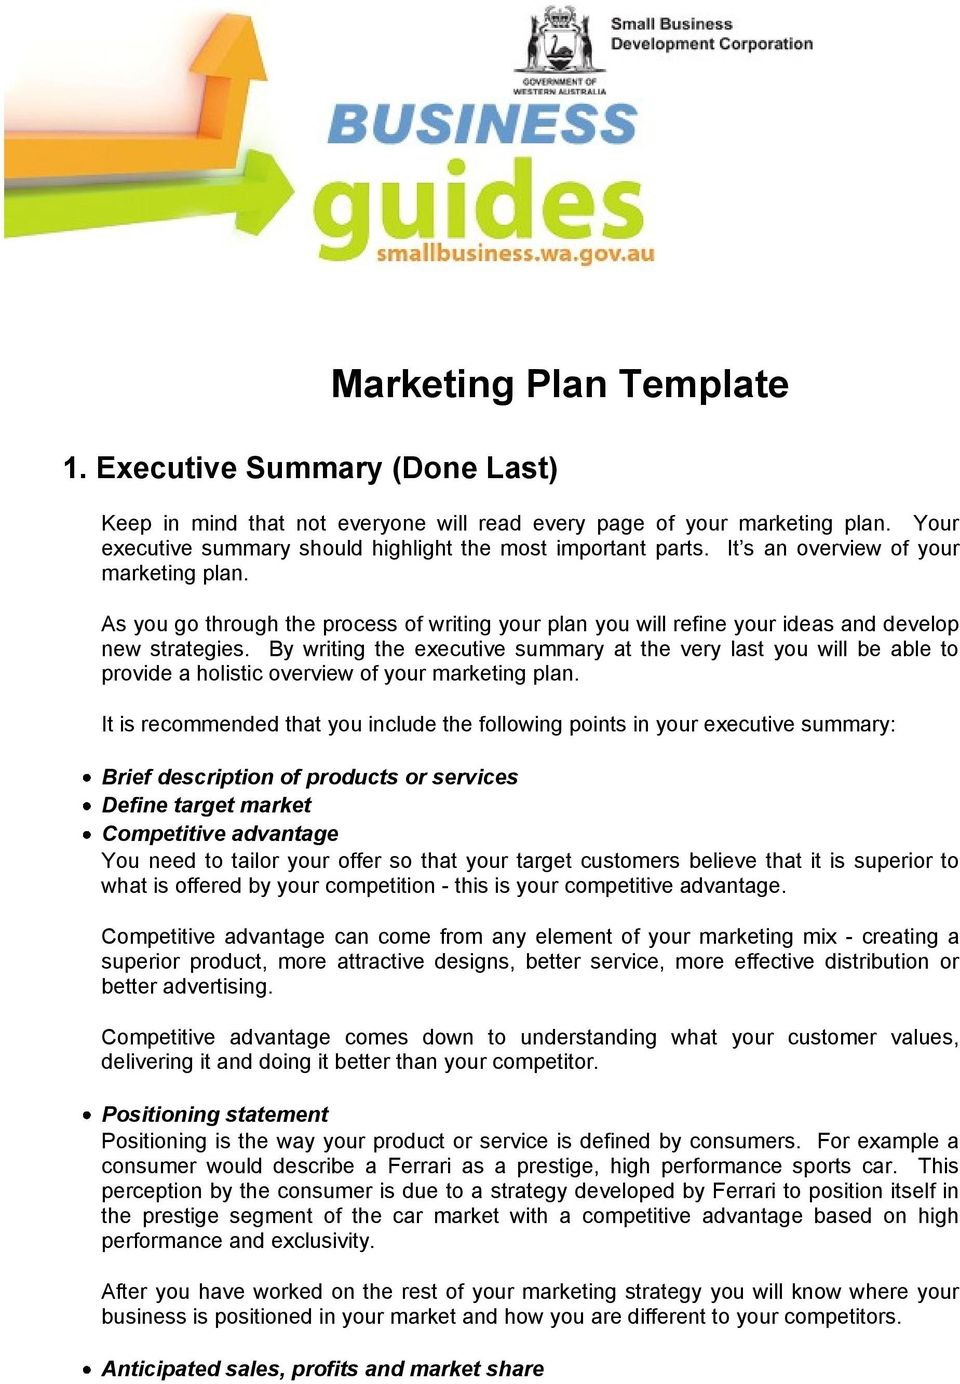 By writing the executive summary at the very last you will be able to provide a holistic overview of your marketing plan.